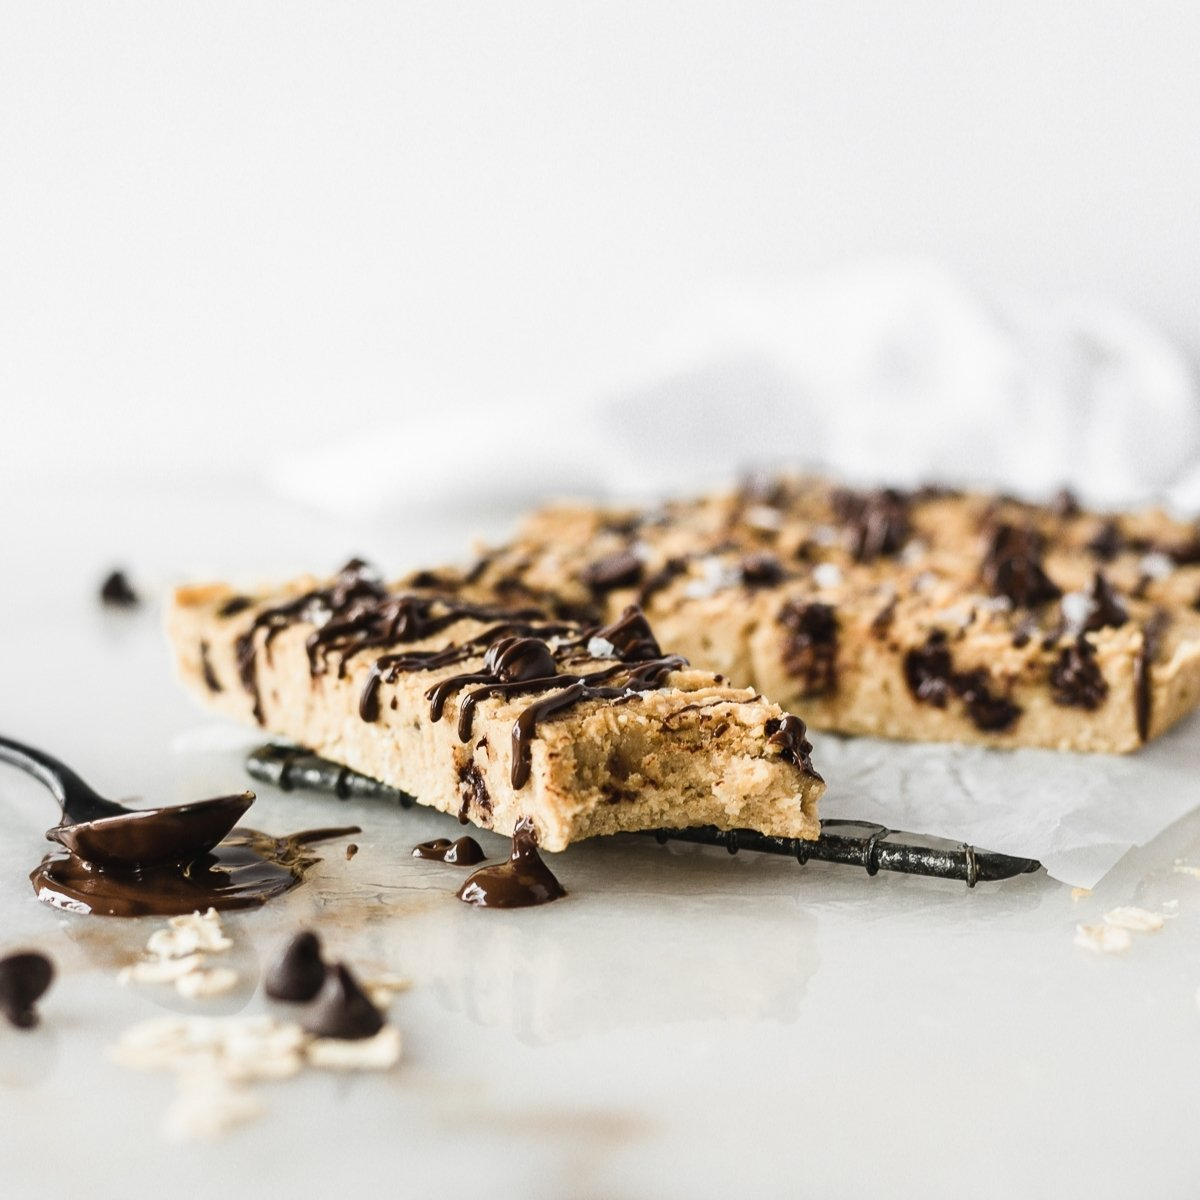 Homemade healthy protein bars that taste like chocolate chip cookies and made with NO protein powder. They're vegetarian, gluten free, and made with healthy ingredients.  via livelytable.com